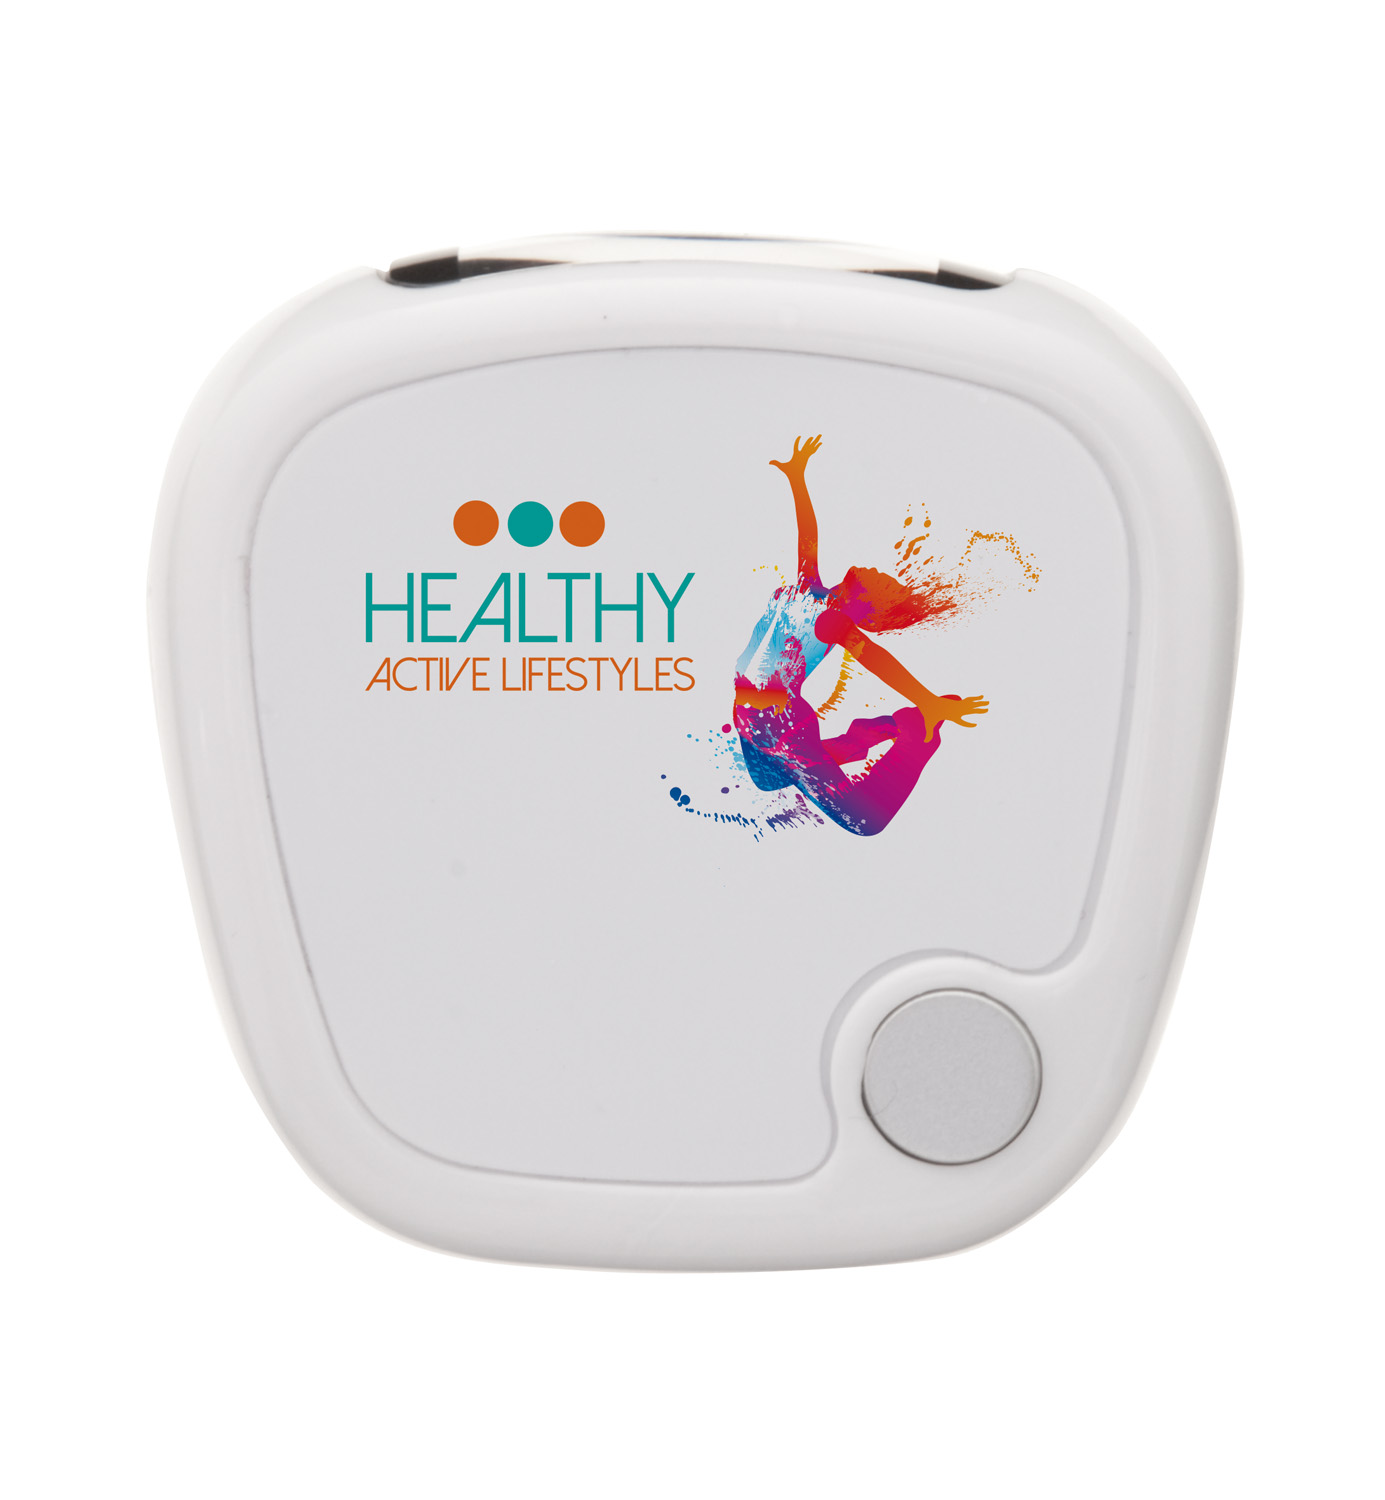 Colour Pedometer ( Digital print - white product )